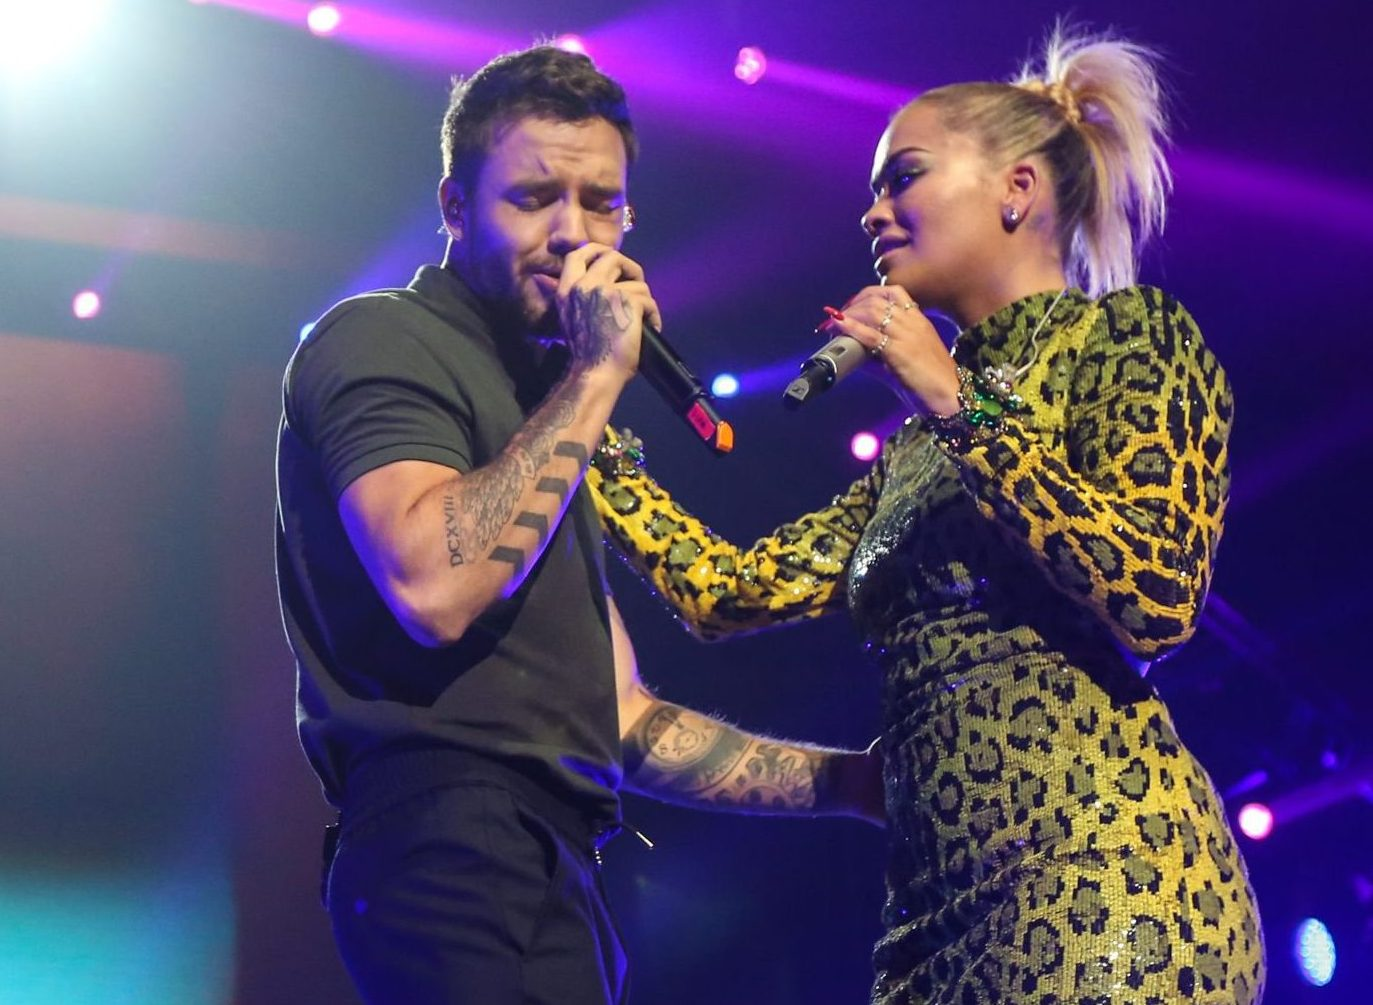 Liam Payne whispers into Rita Ora's ear while she 'grinds on him' off-stage at pre-VMAs concert